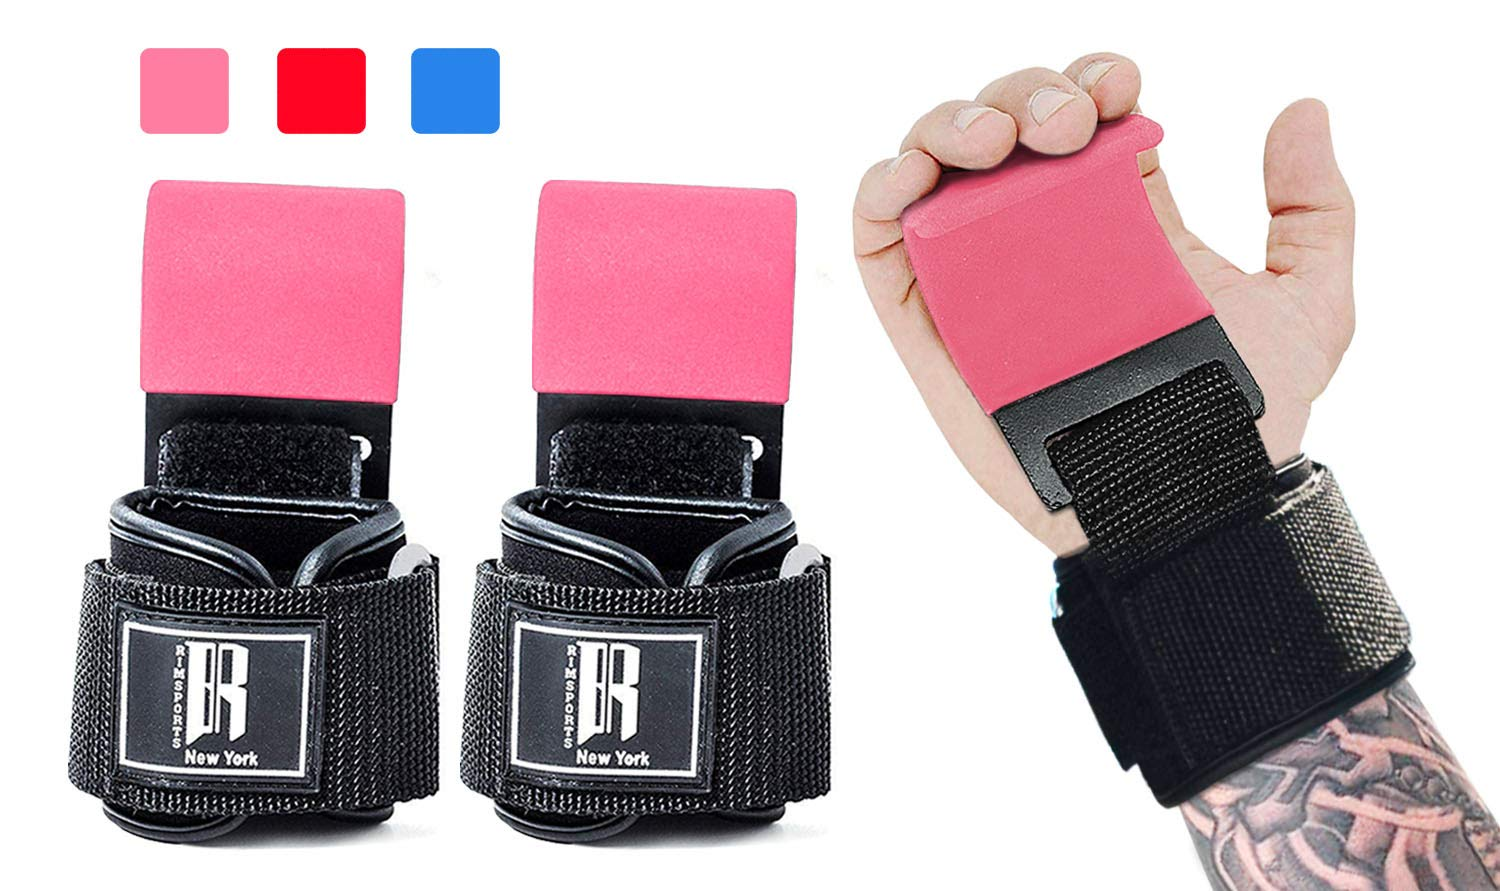 Weight Lifting Hooks Heavy Duty -Lifting Wrist Straps for Pull-ups - Deadlift Straps for Power Lifting - Weight Lifting Grips & Workout Straps for Weightlifting -Gym Gloves for Men & Women (Pink)